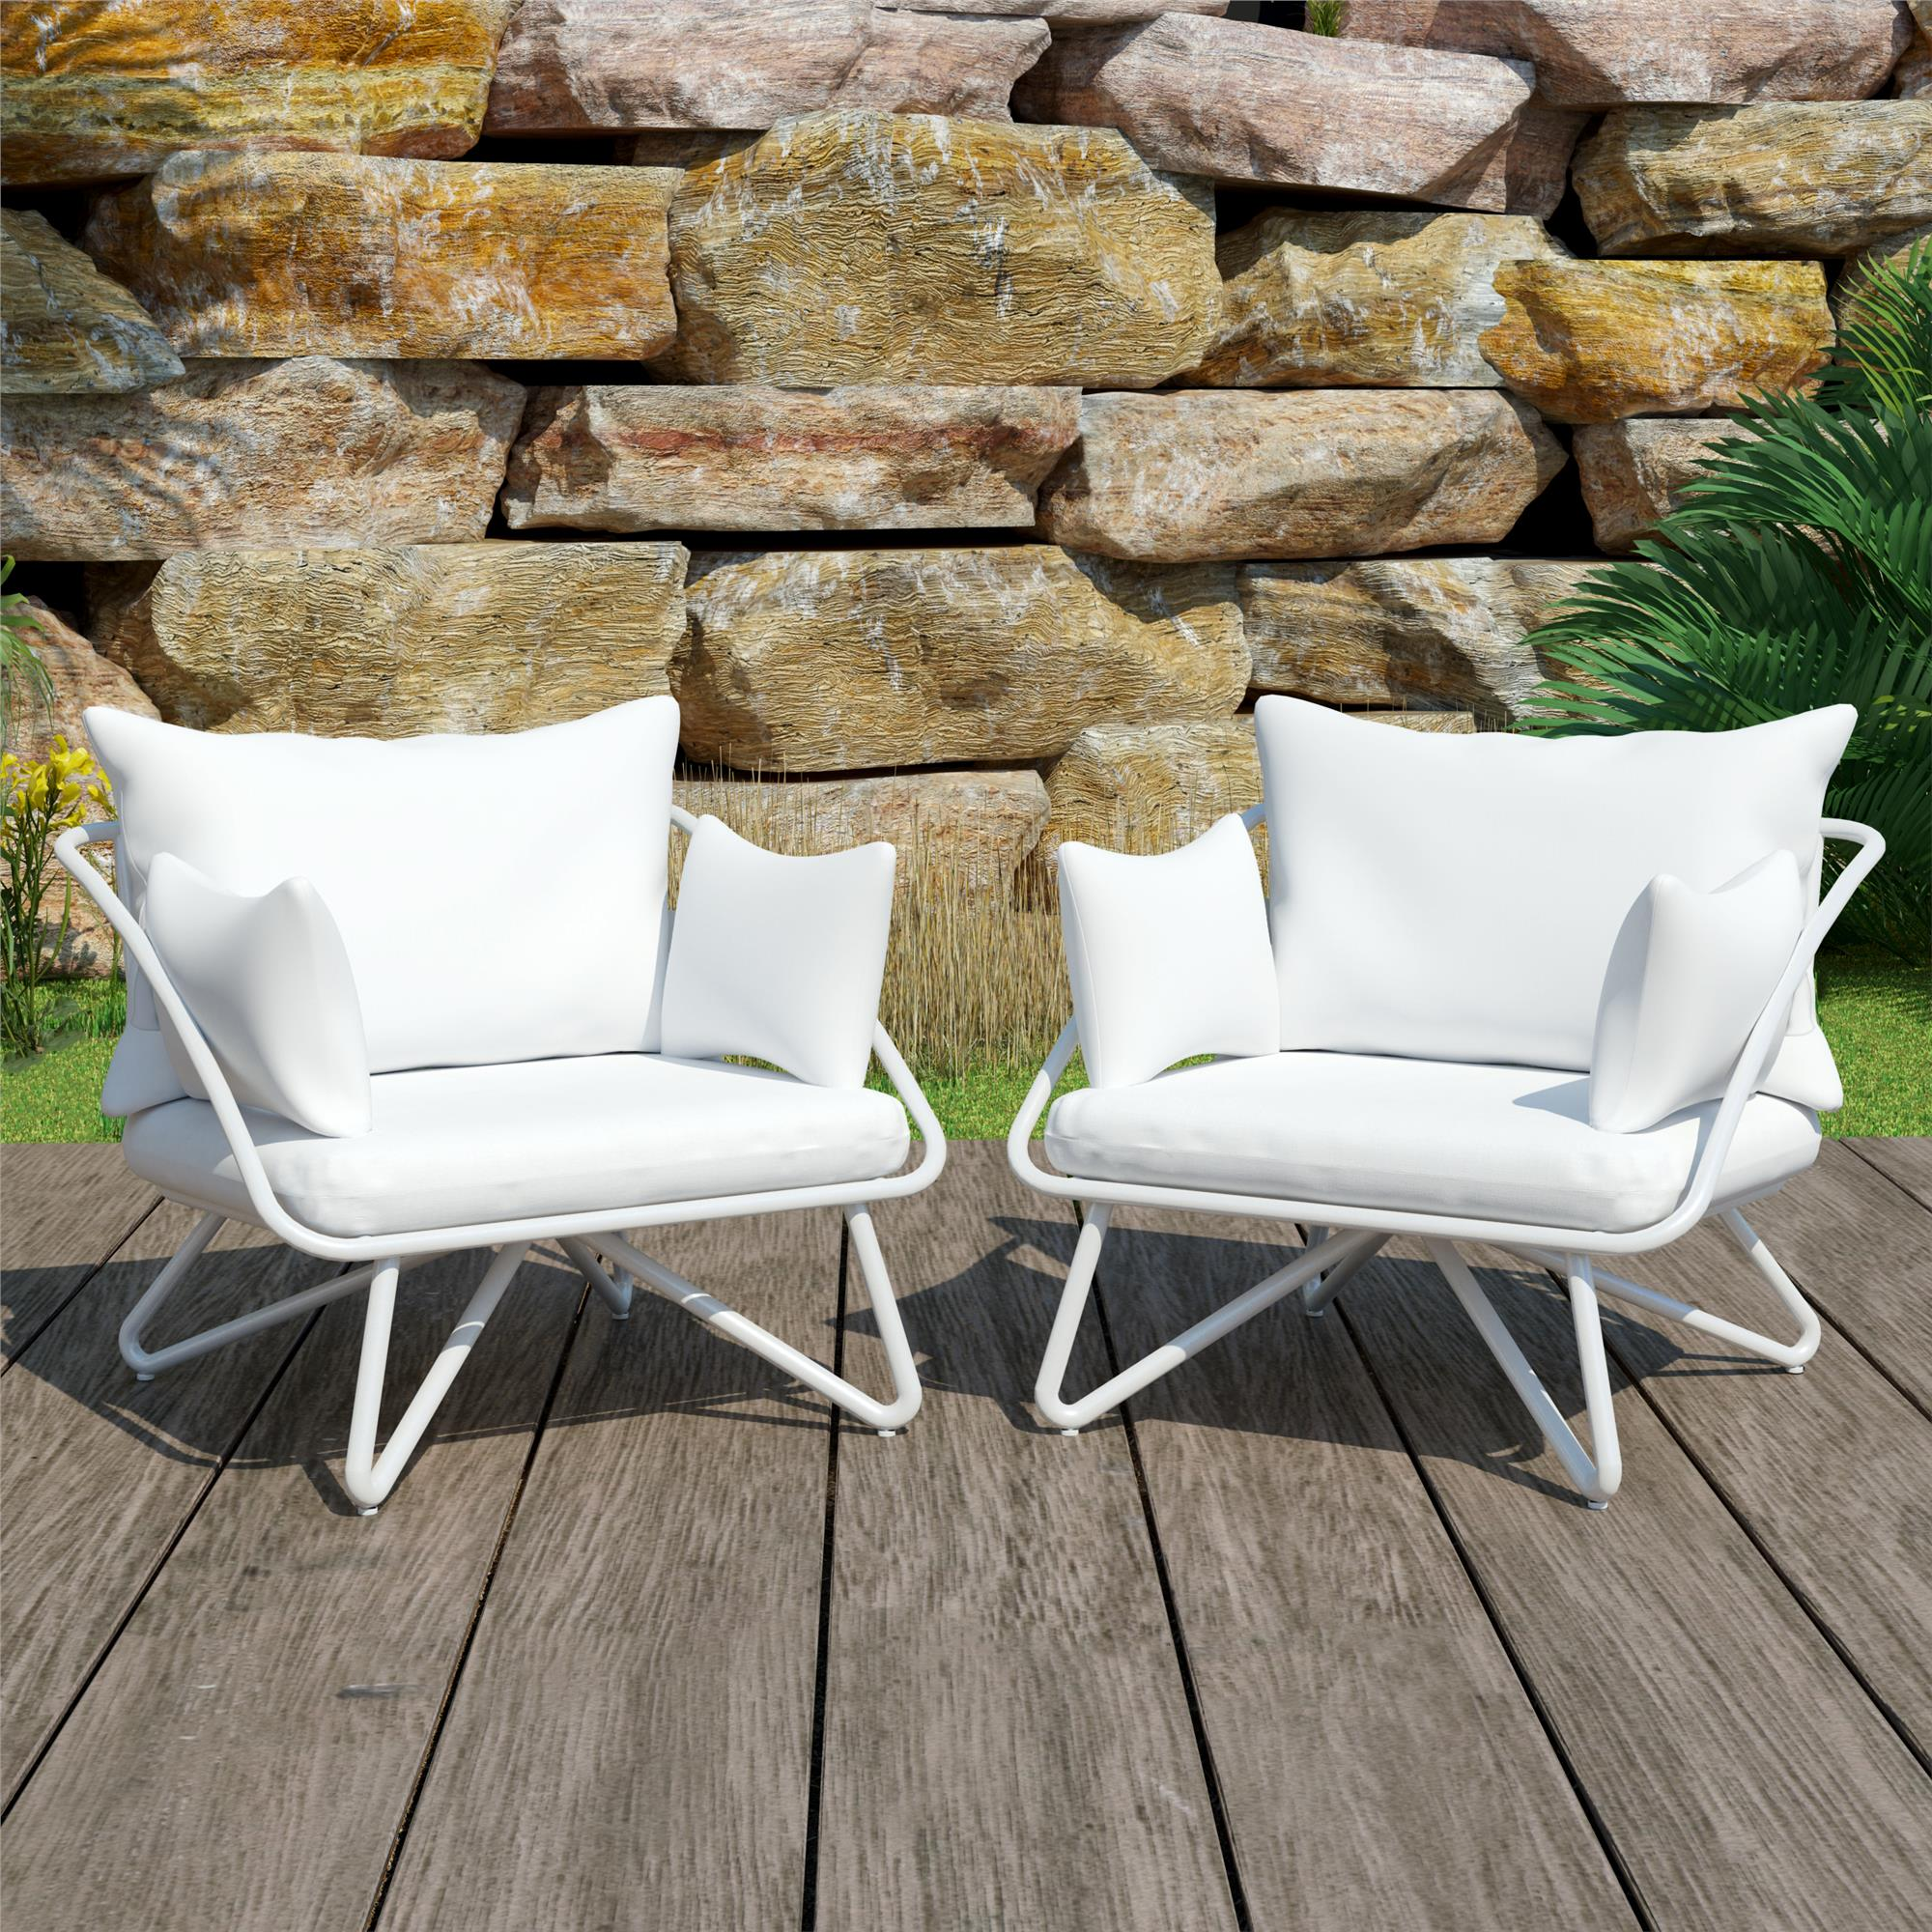 Outdoor Chair Set Teddi Outdoor Lounge Chairs Set Of 2